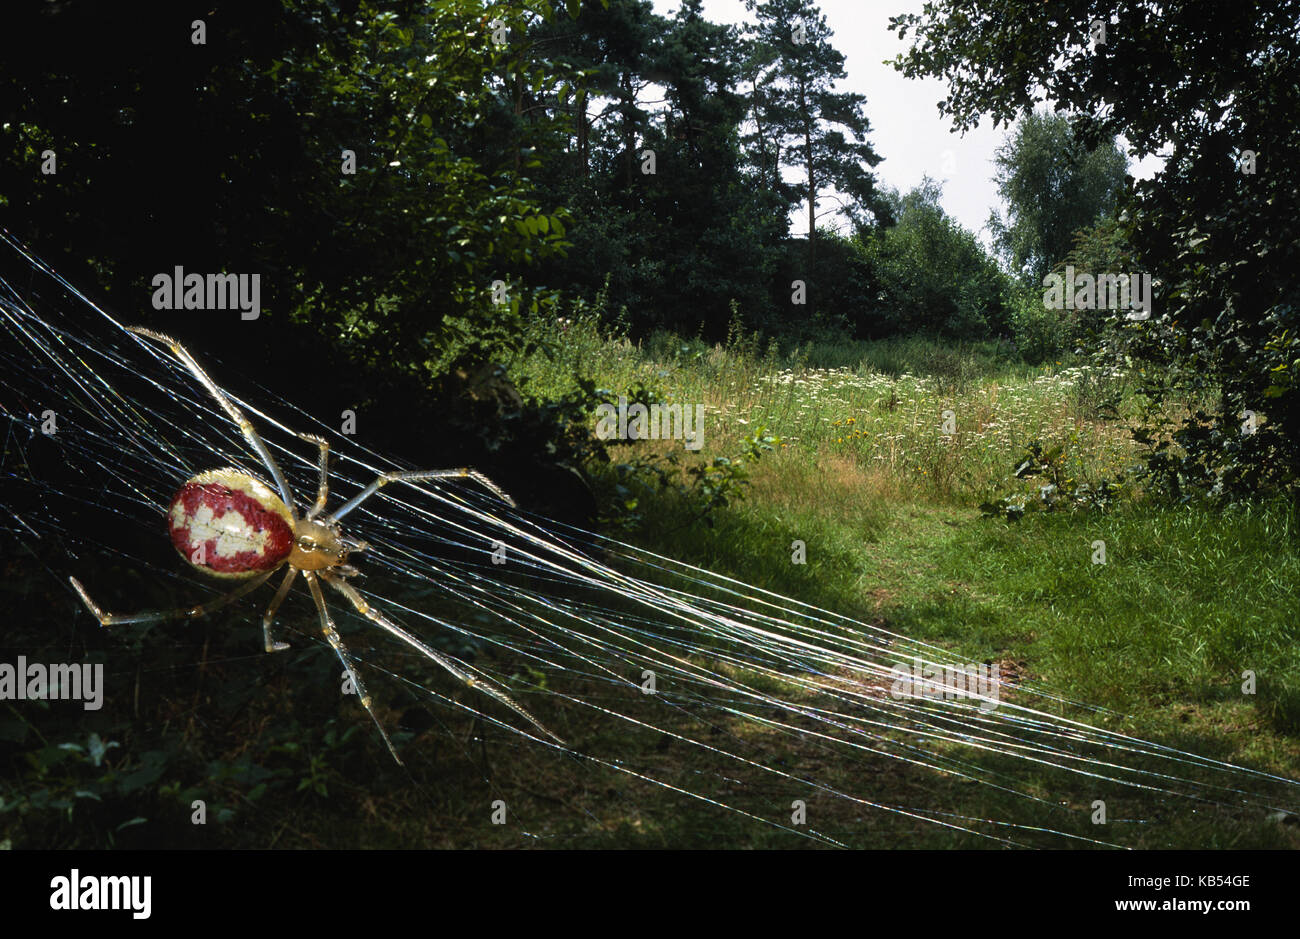 Cobweb Spider (Theridion sp.) in its web in landscape, Belgium - Stock Image